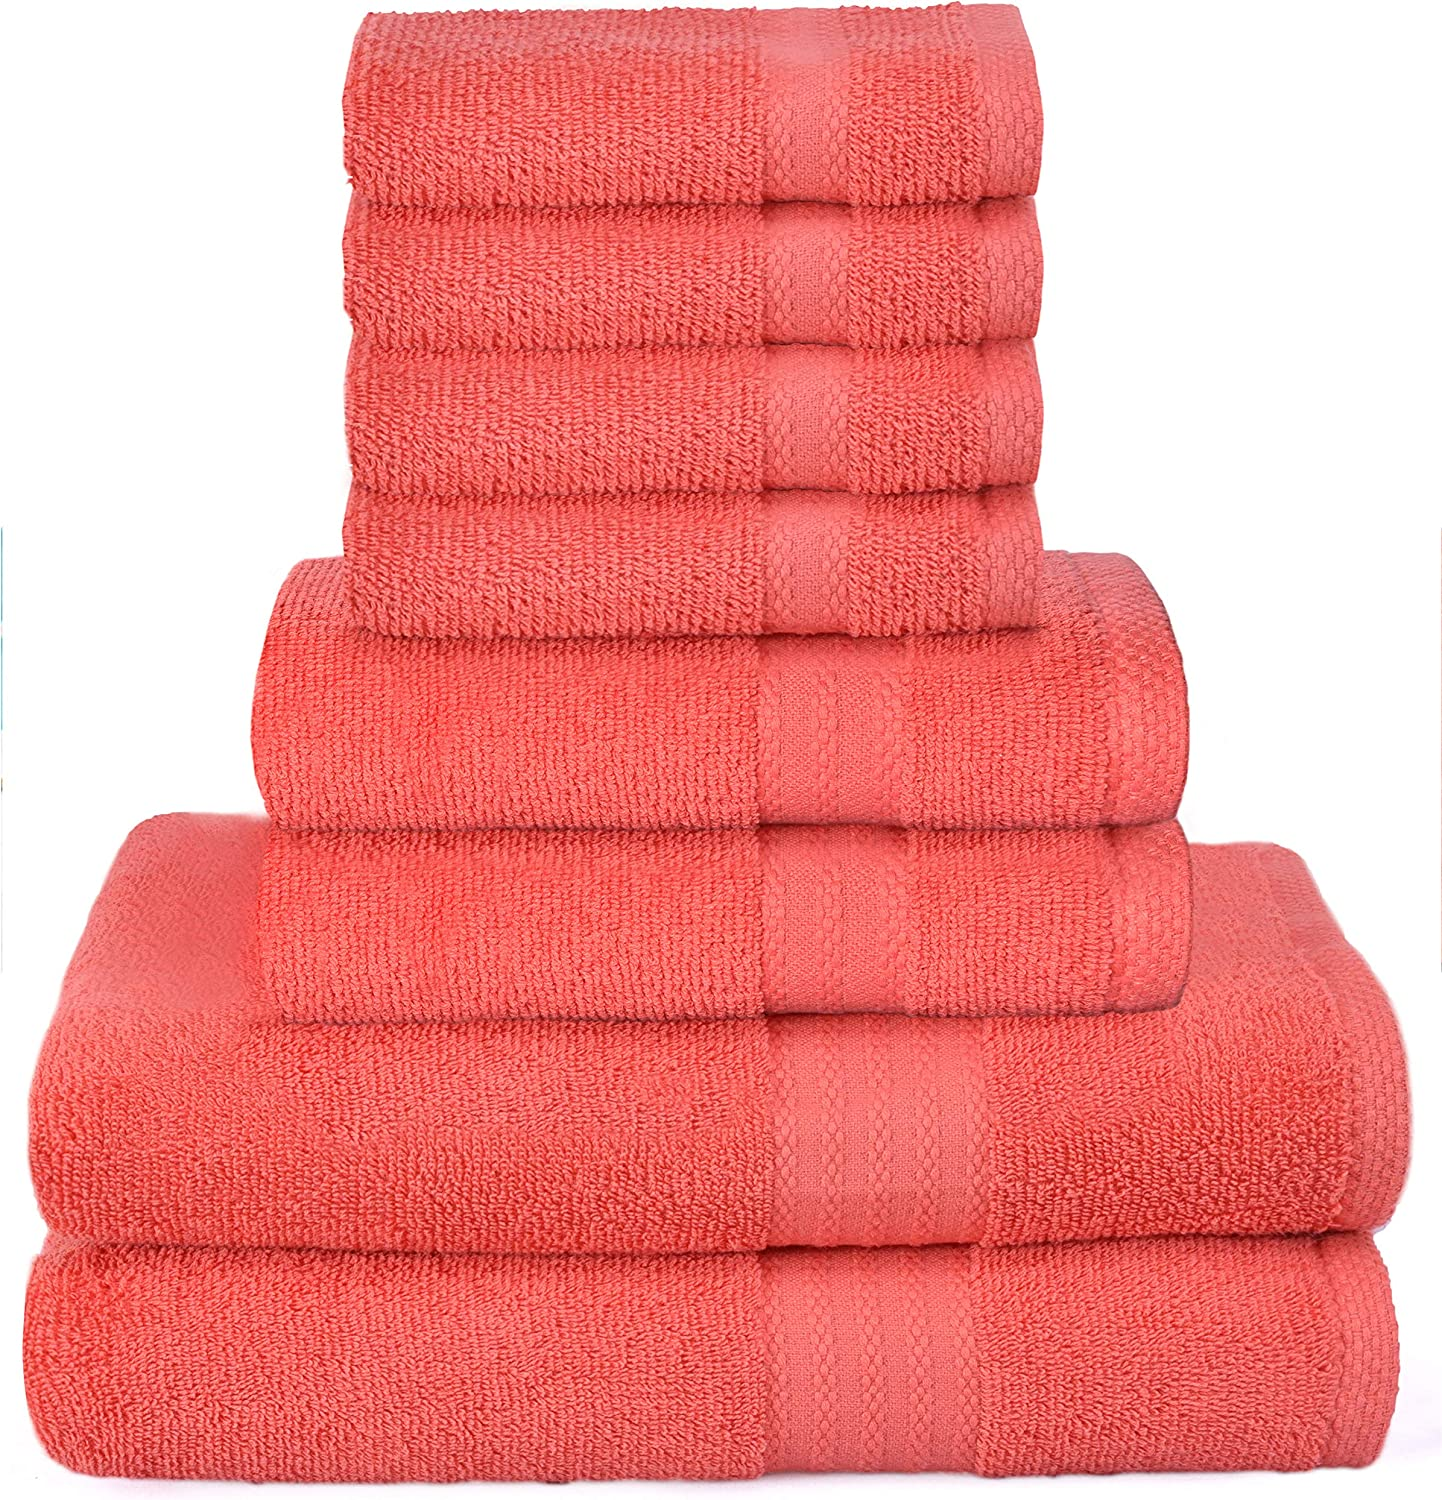 Glamburg Ultra Soft 8-Piece Towel Set - 100% Pure Ringspun Cotton, Contains 2 Oversized Bath Towels 27x54, 2 Hand Towels 16x28, 4 Wash Cloths 13x13 - Ideal for Everyday use, Hotel & Spa - Coral Orange